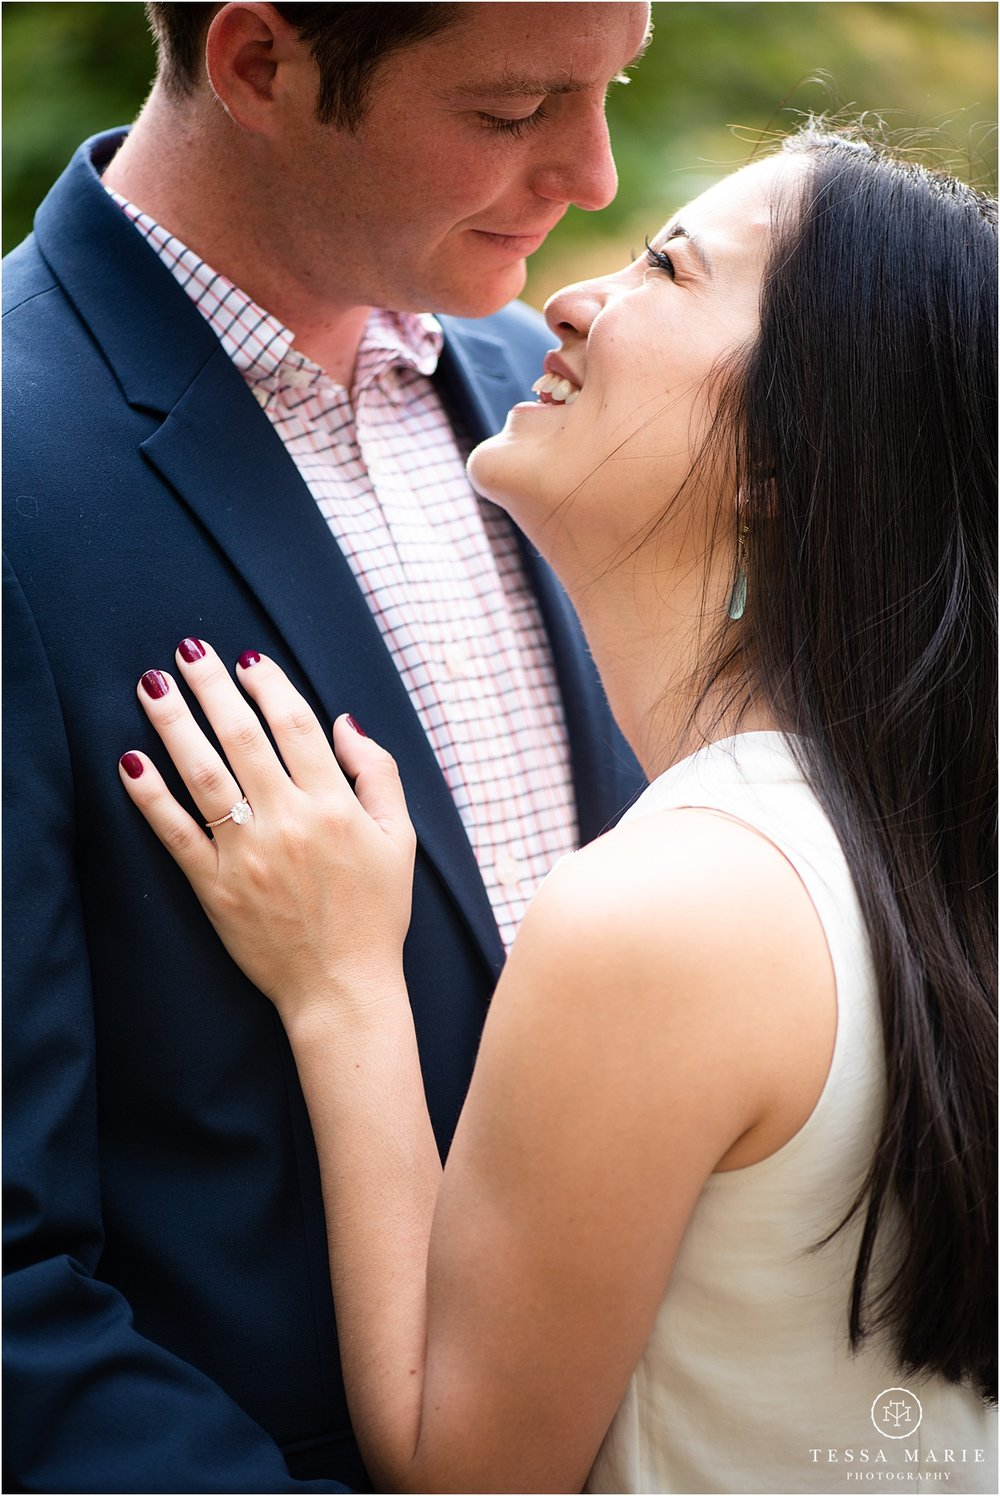 Tessa_marie_photography_wedding_photographer_engagement_pictures_piedmont_park_0051.jpg